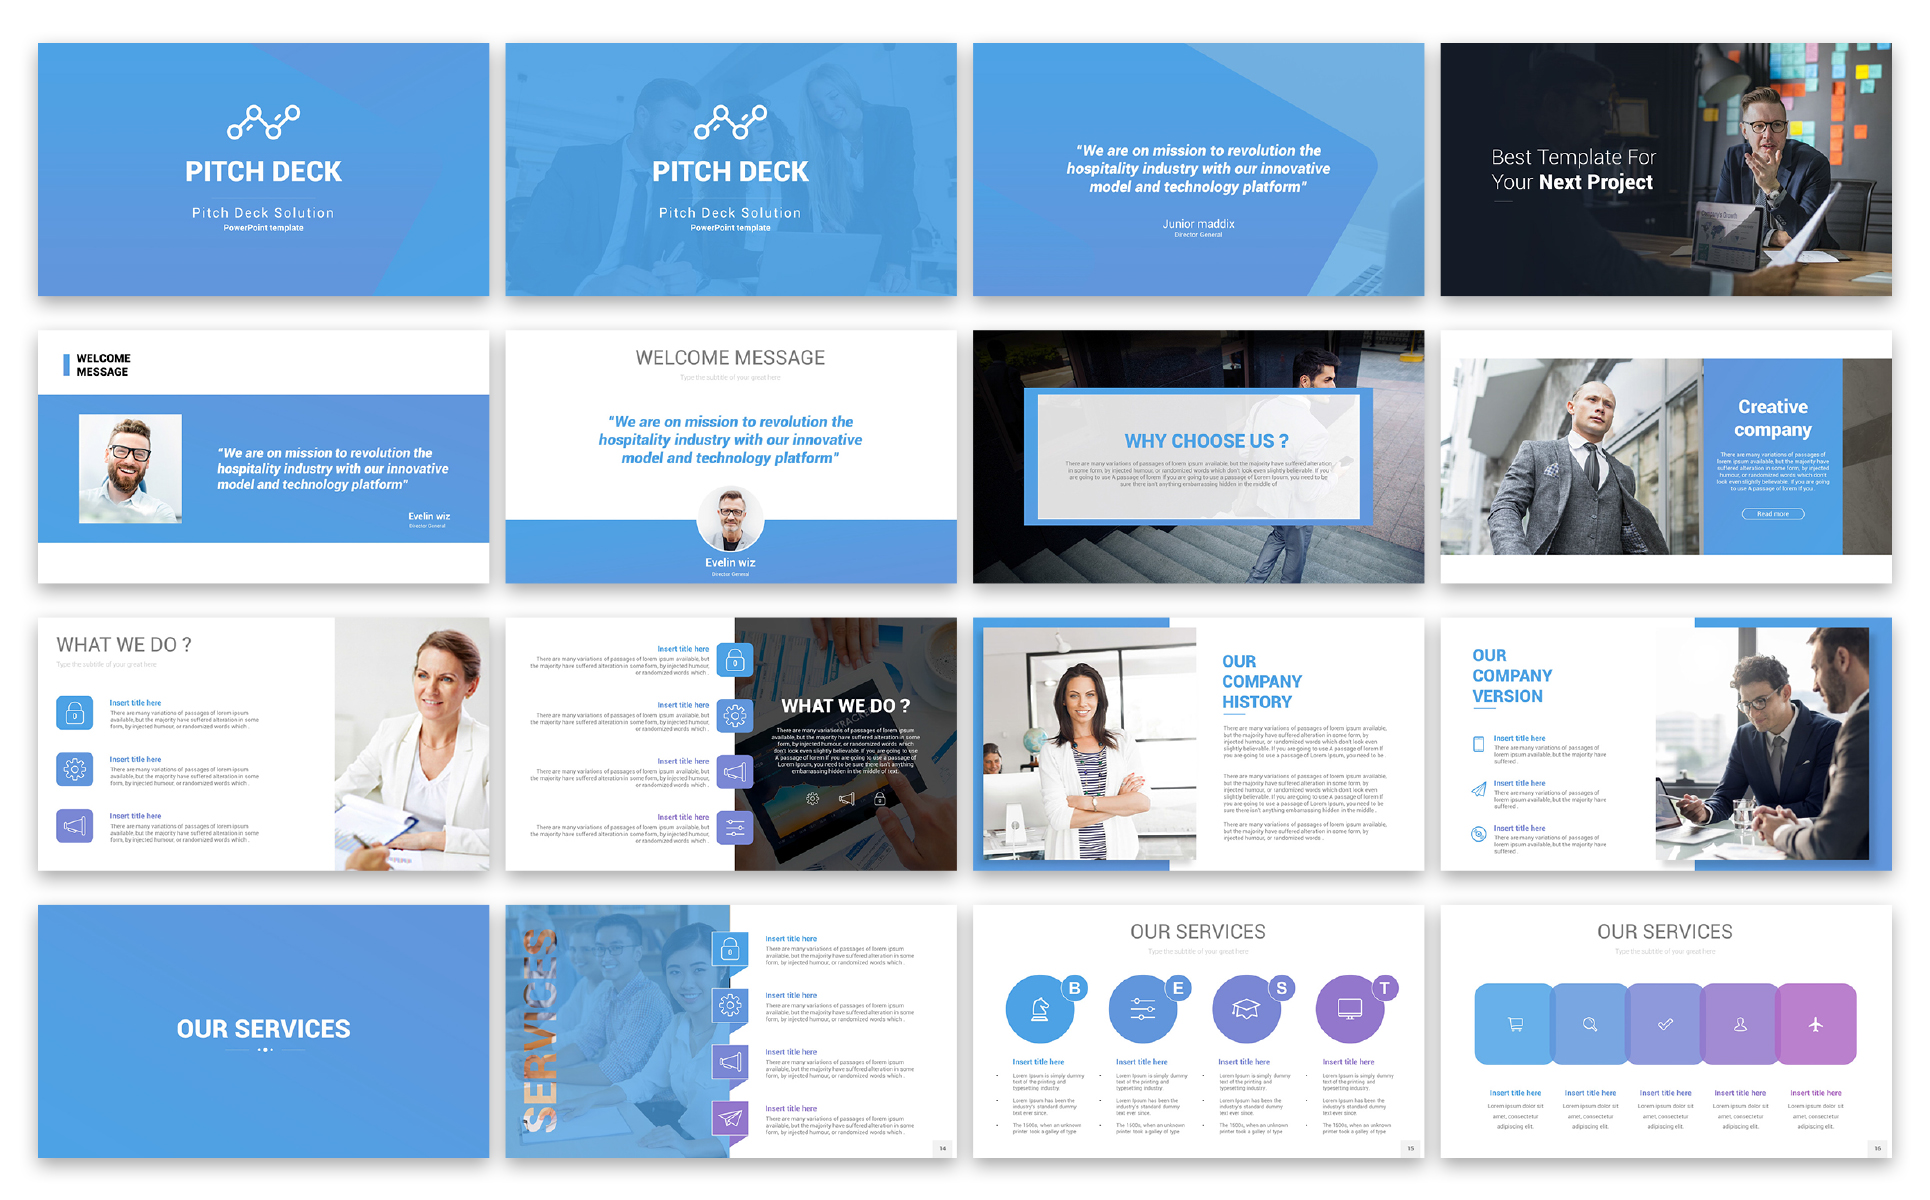 Pitch Deck Solution Presentation PowerPoint Template